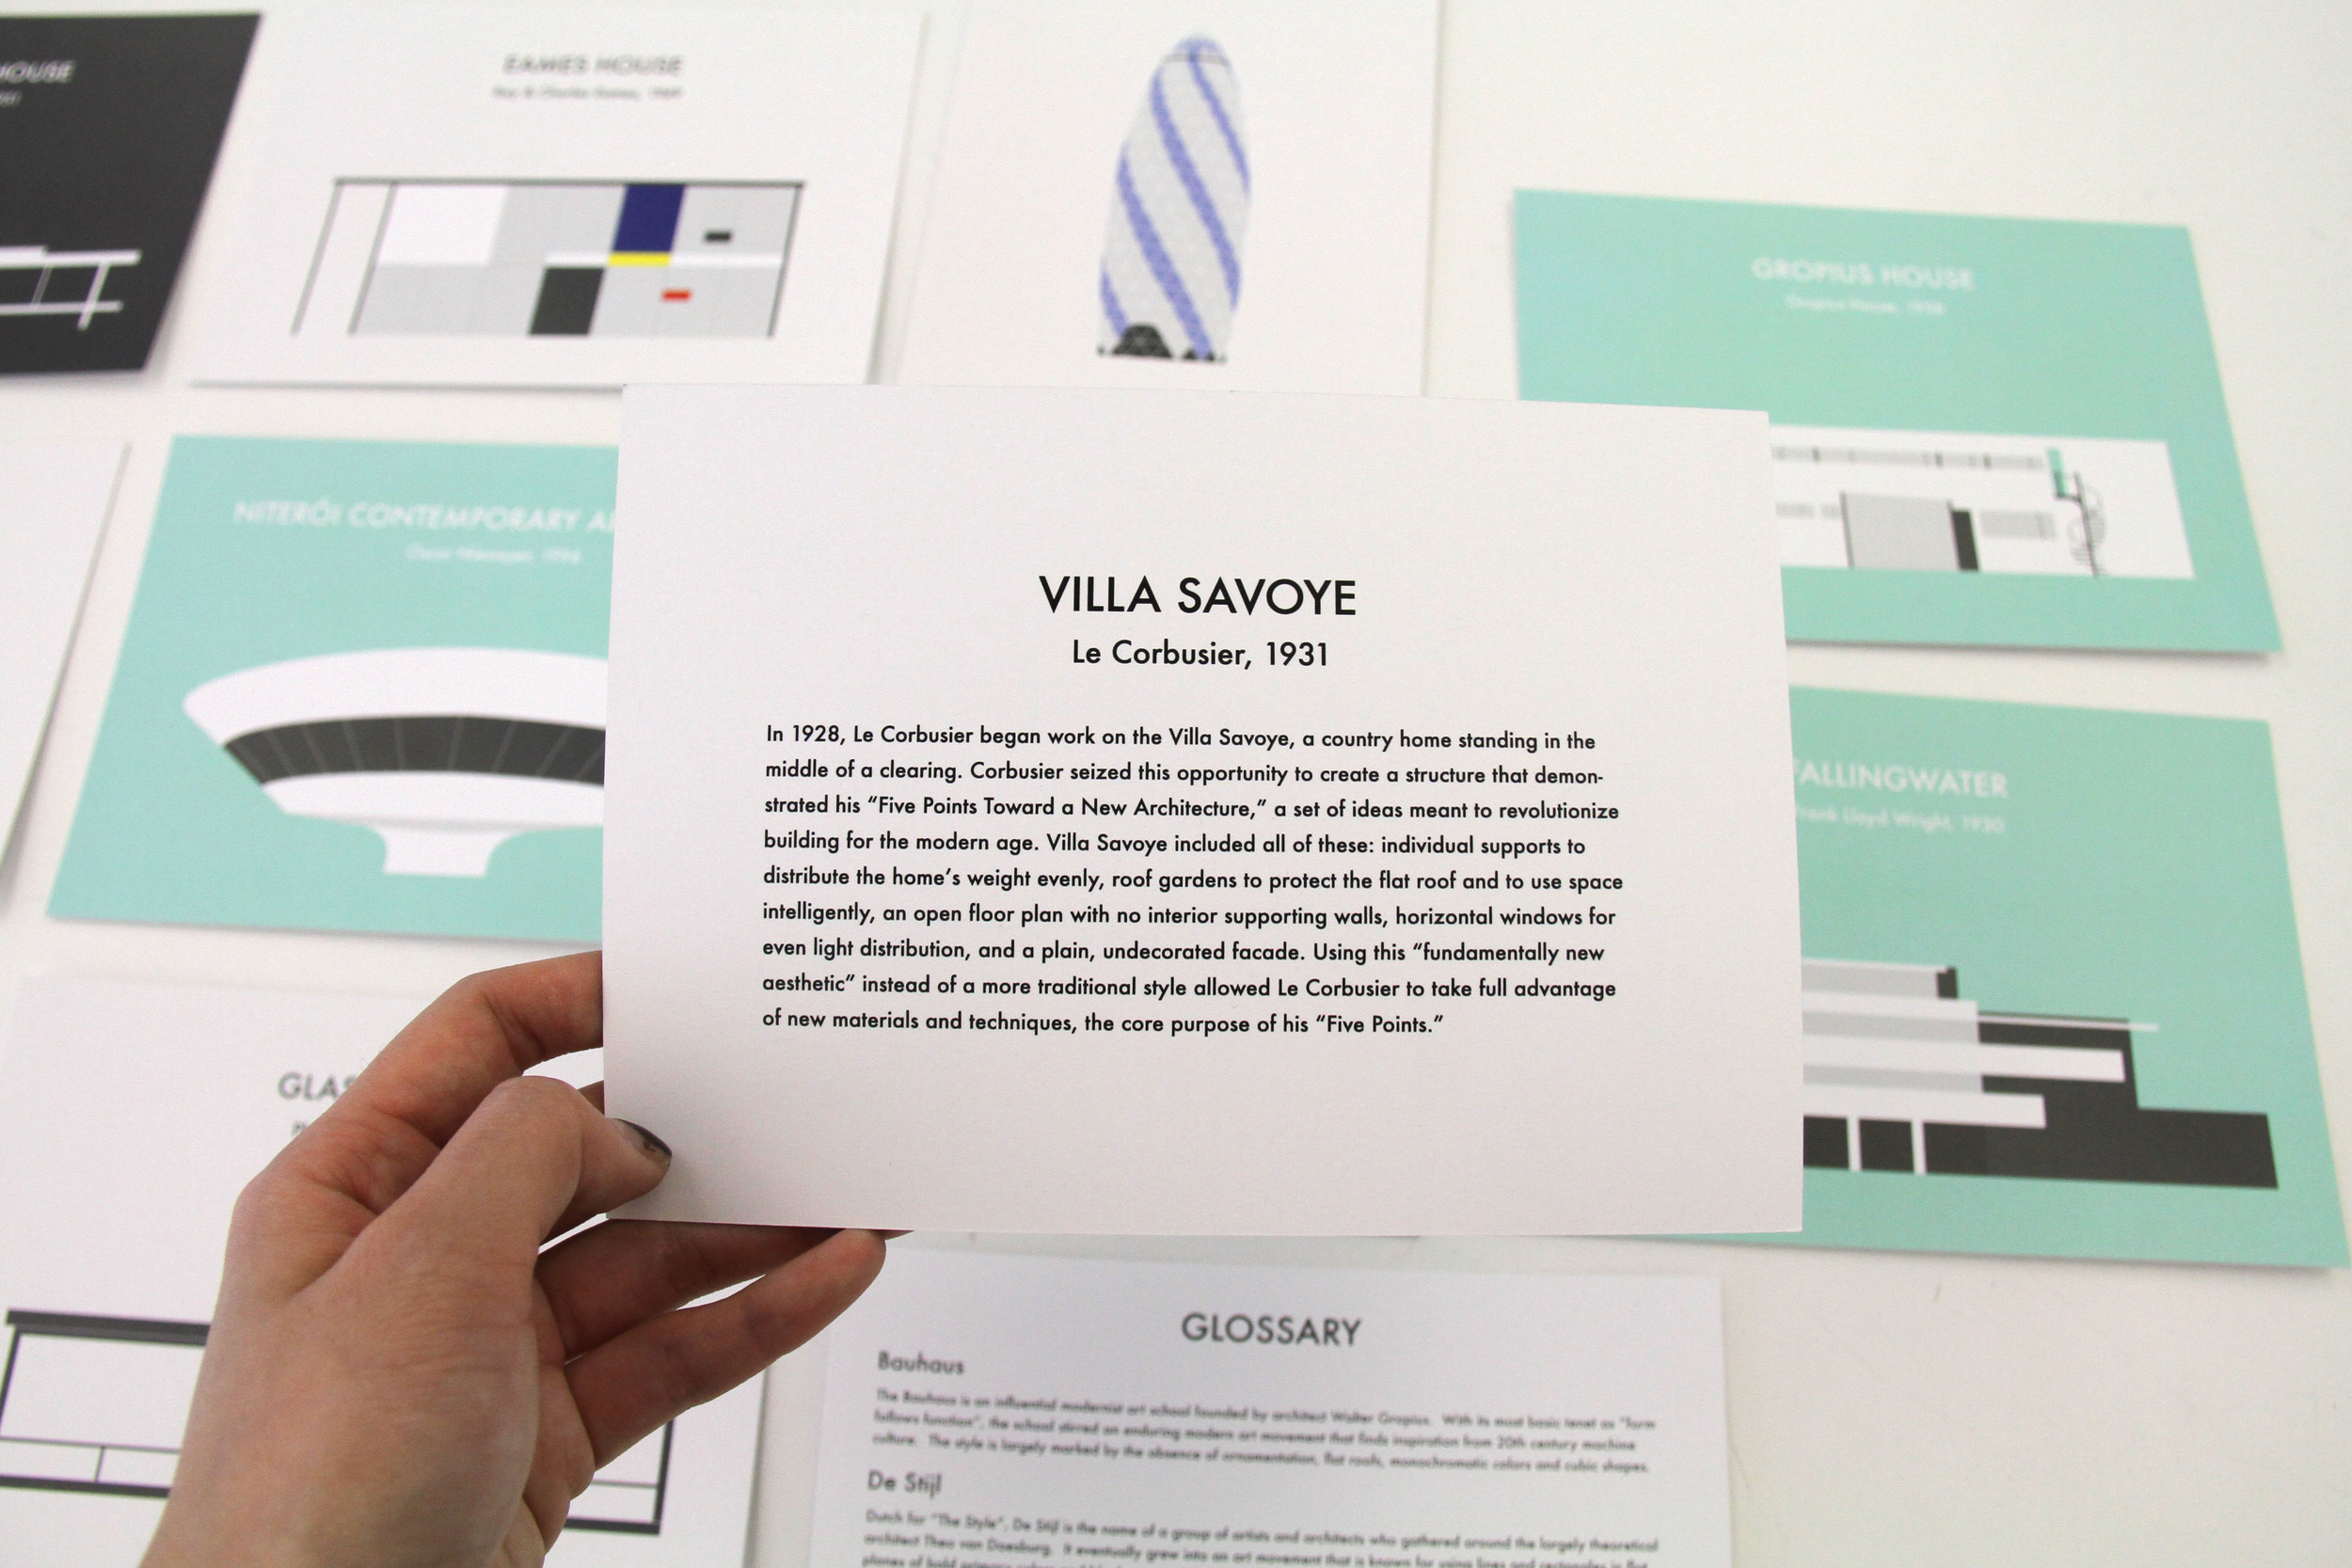 For those who want to learn more about architecture, the back of the prints come with information about the building that every architect knows.